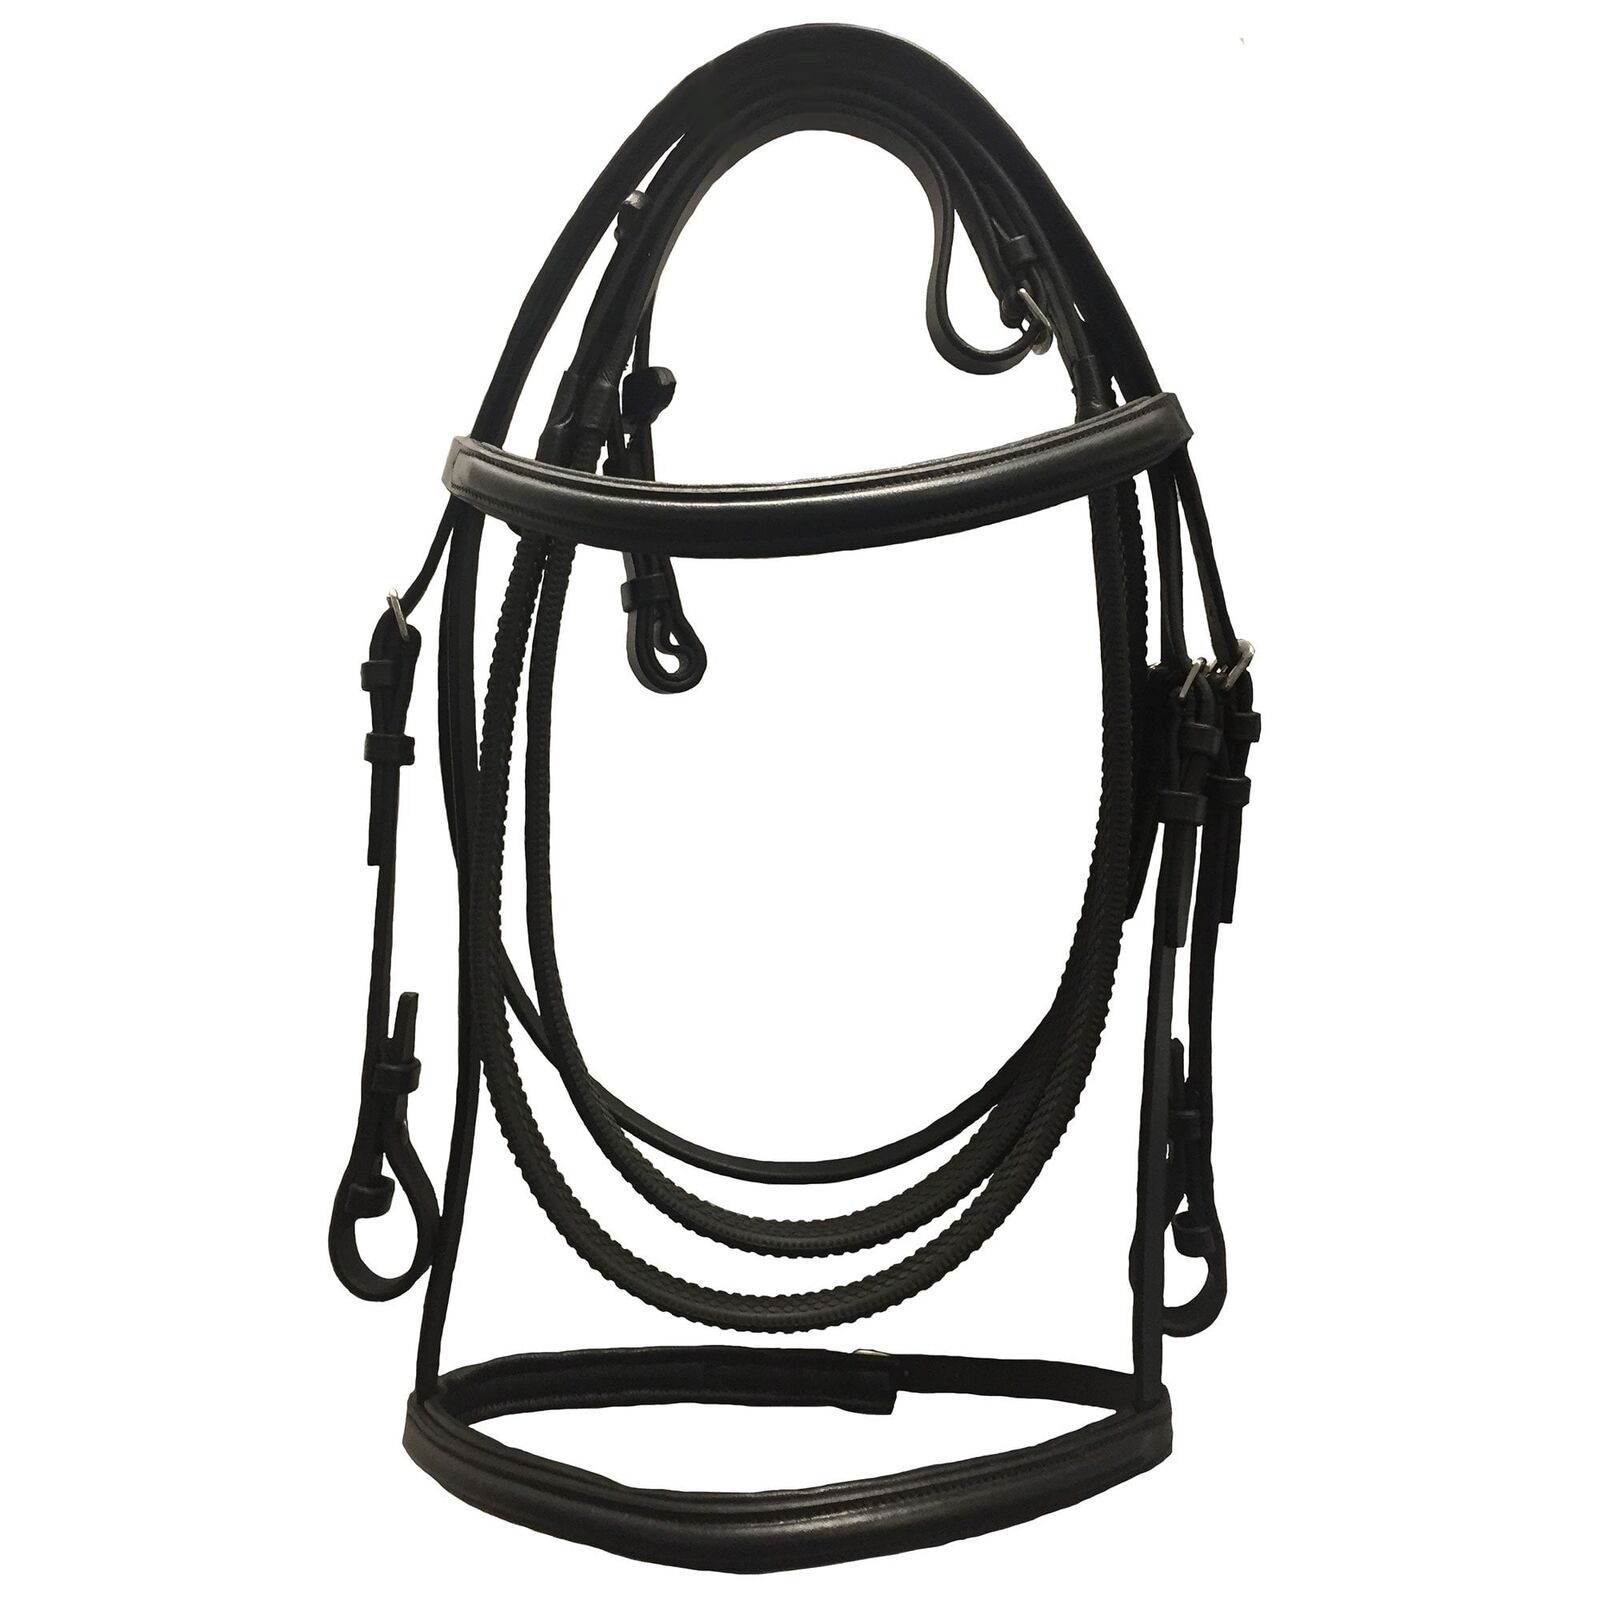 JHL Raised Cavesson Bridle With Rubber Reins